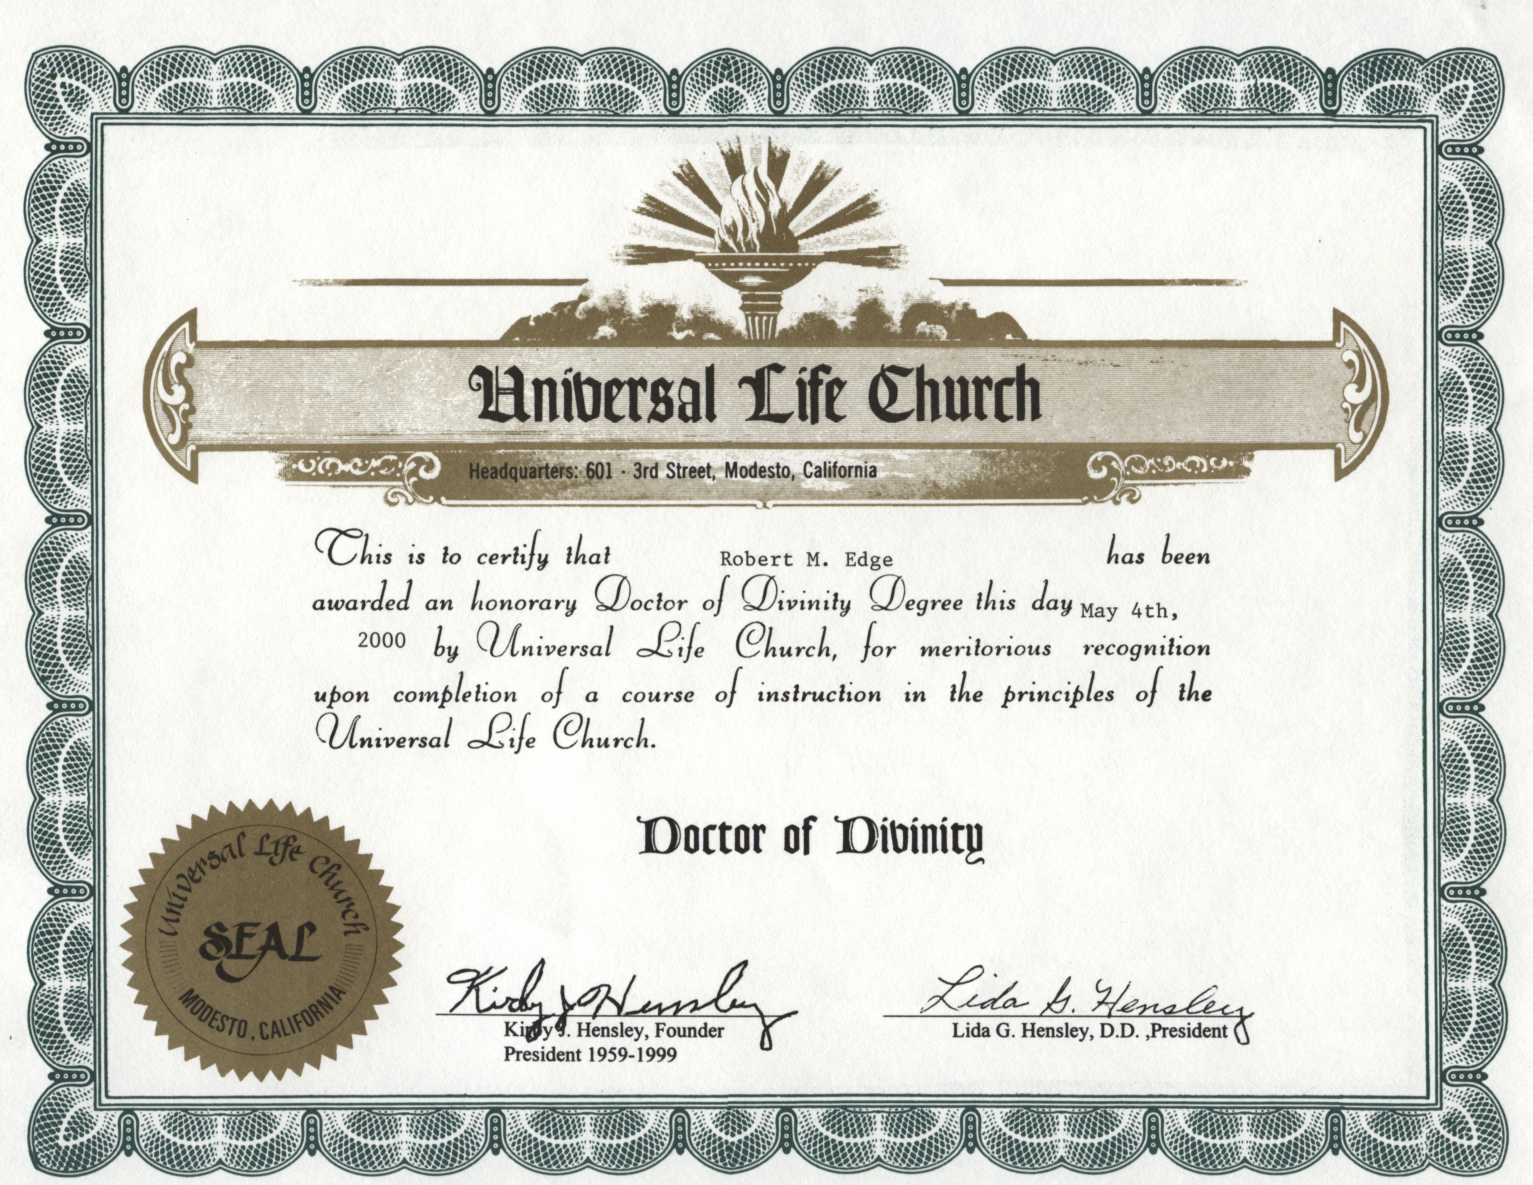 Dr Mince's Doctorate of Divinity